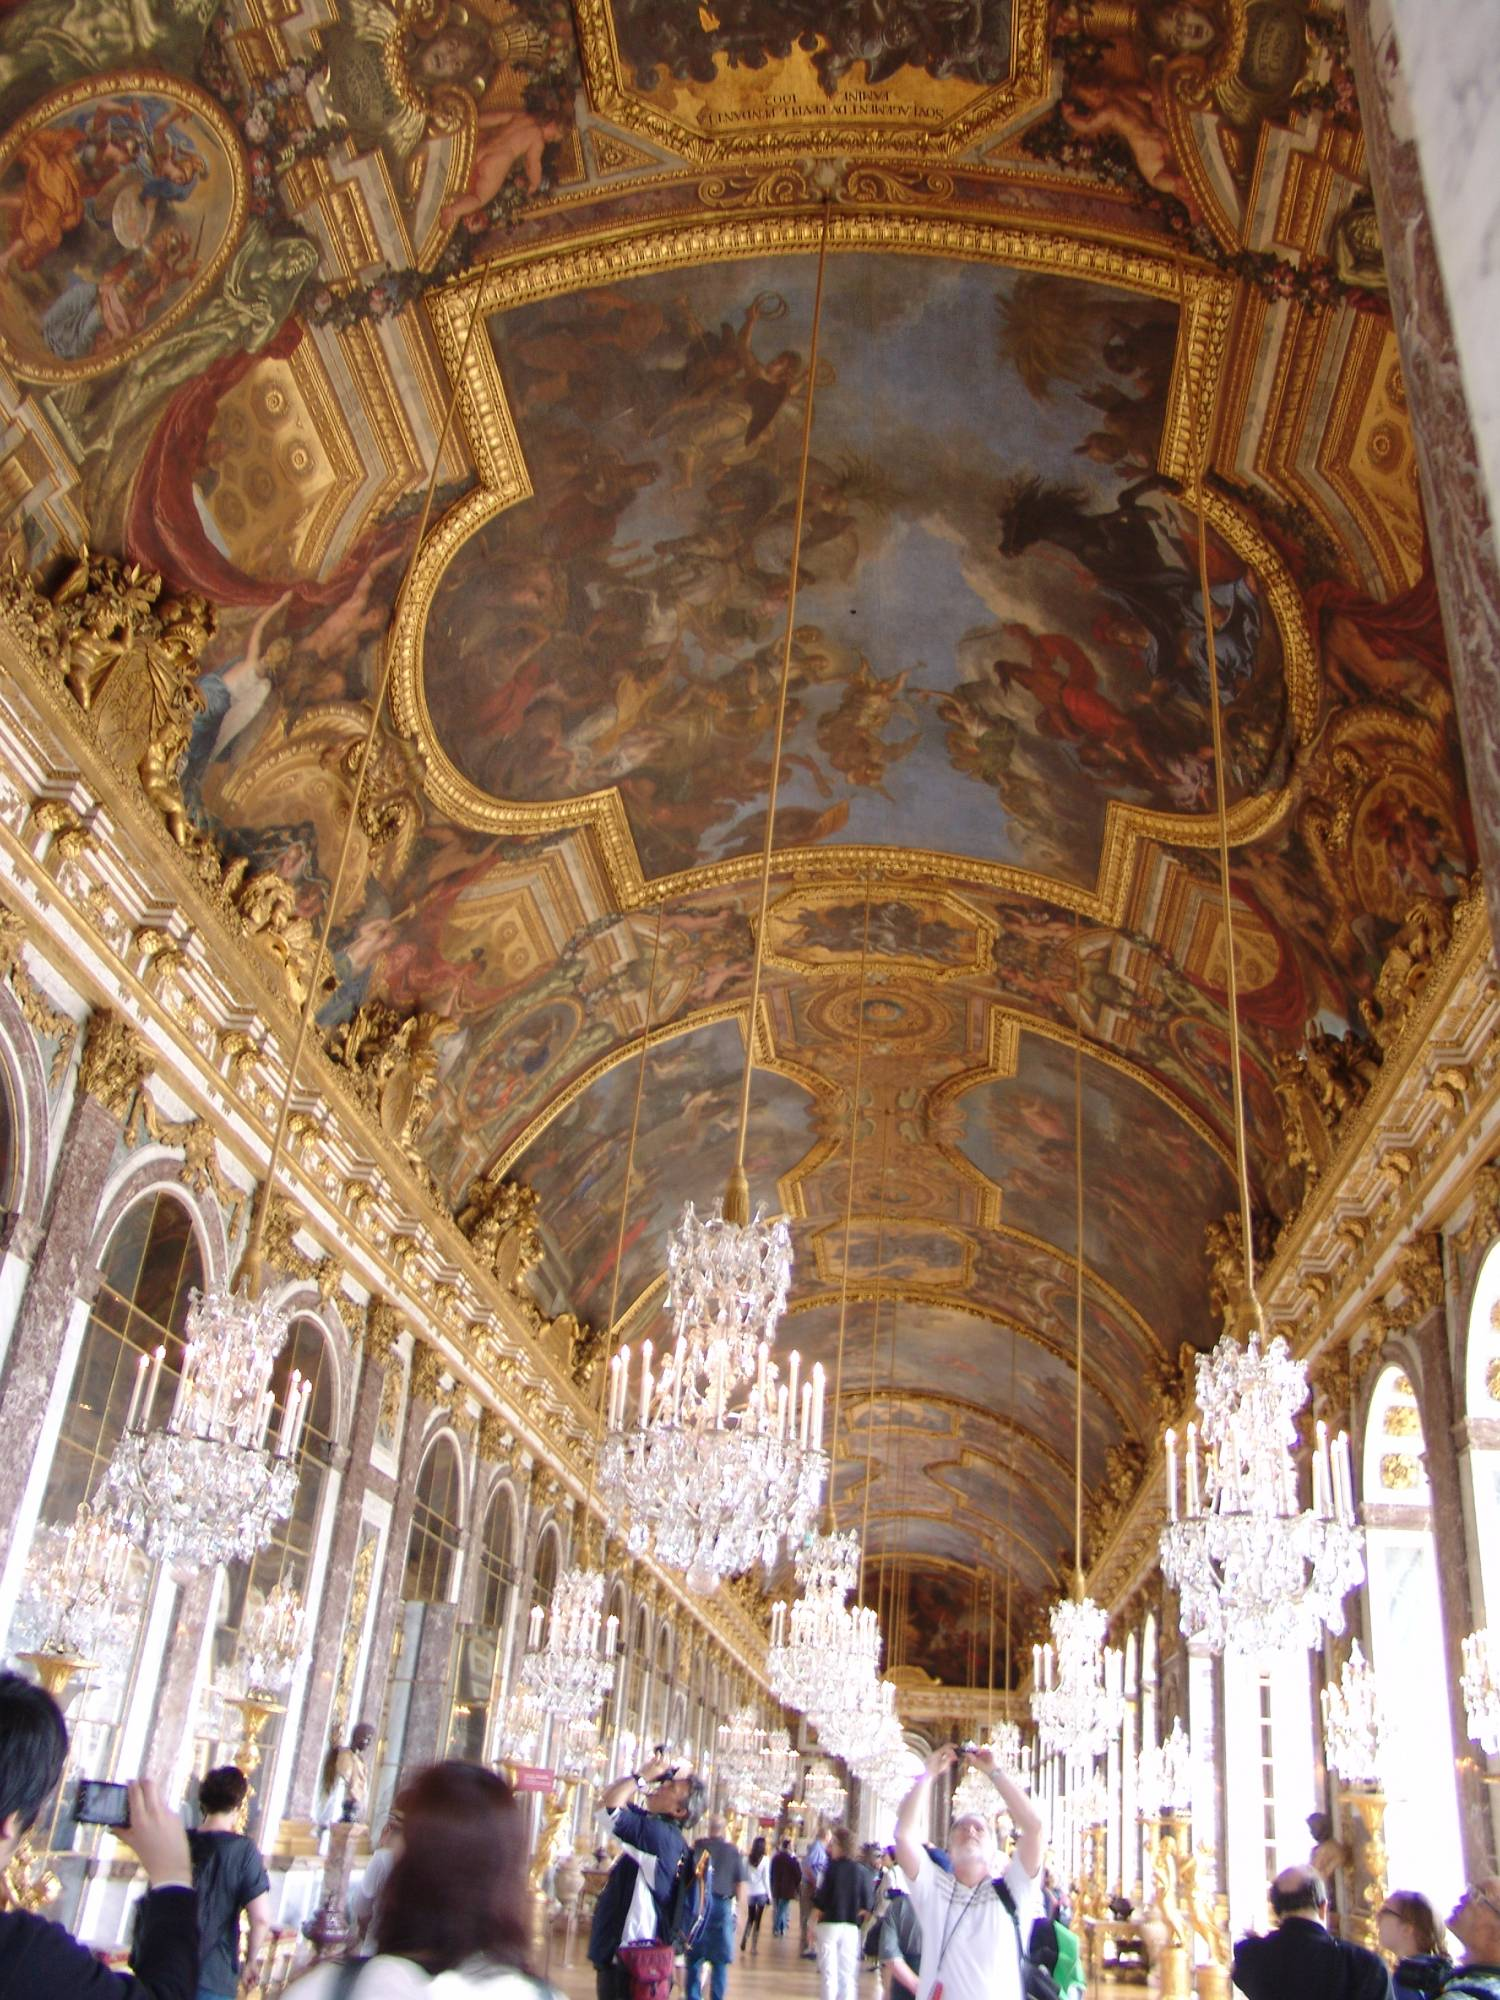 Visit the Palace of Versailles in France |PassPorter.com